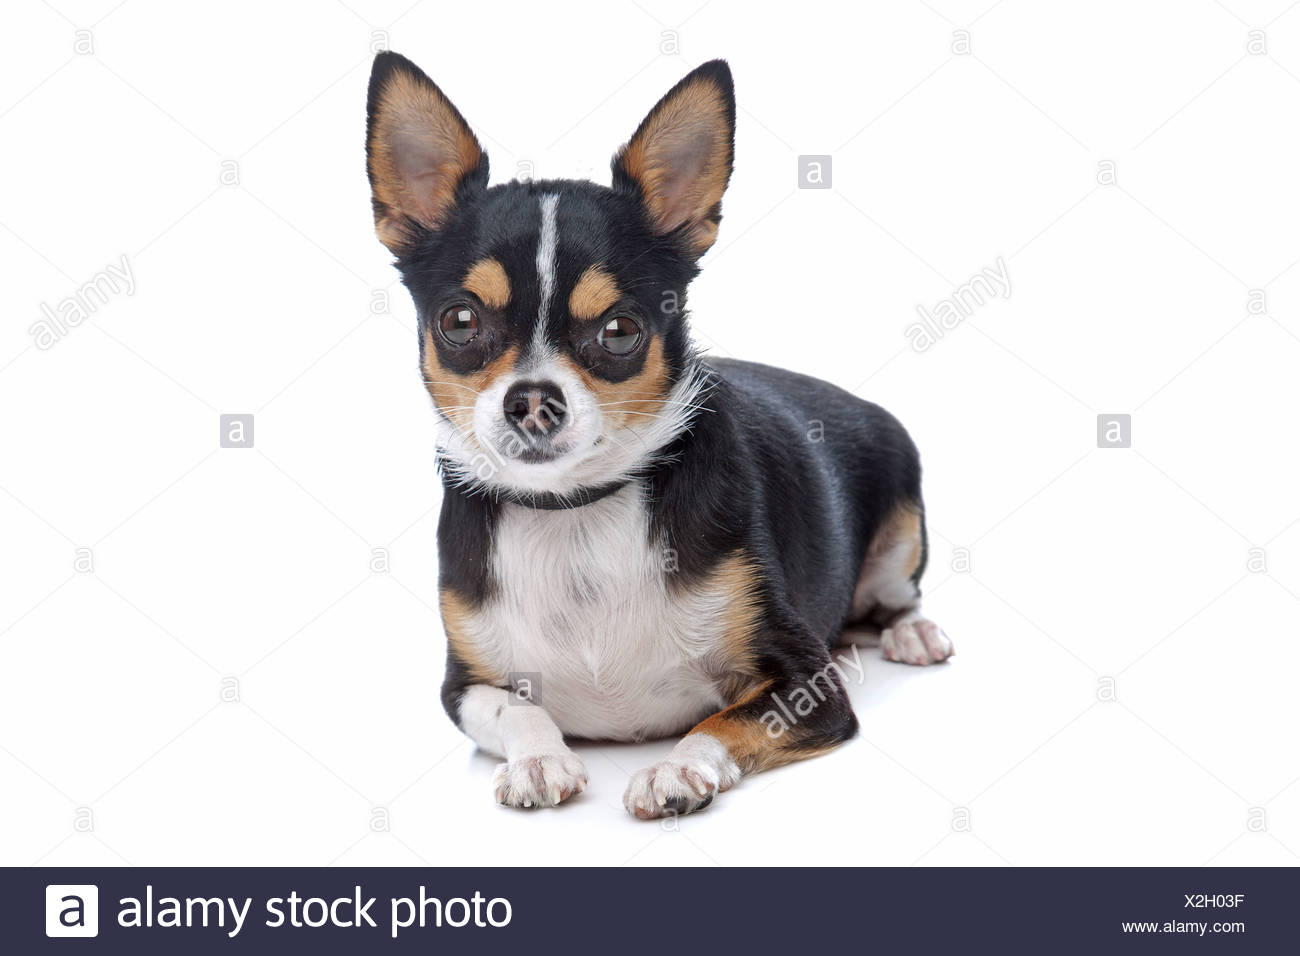 Tricolor Chihuahua Stock Photos Tricolor Chihuahua Stock Images